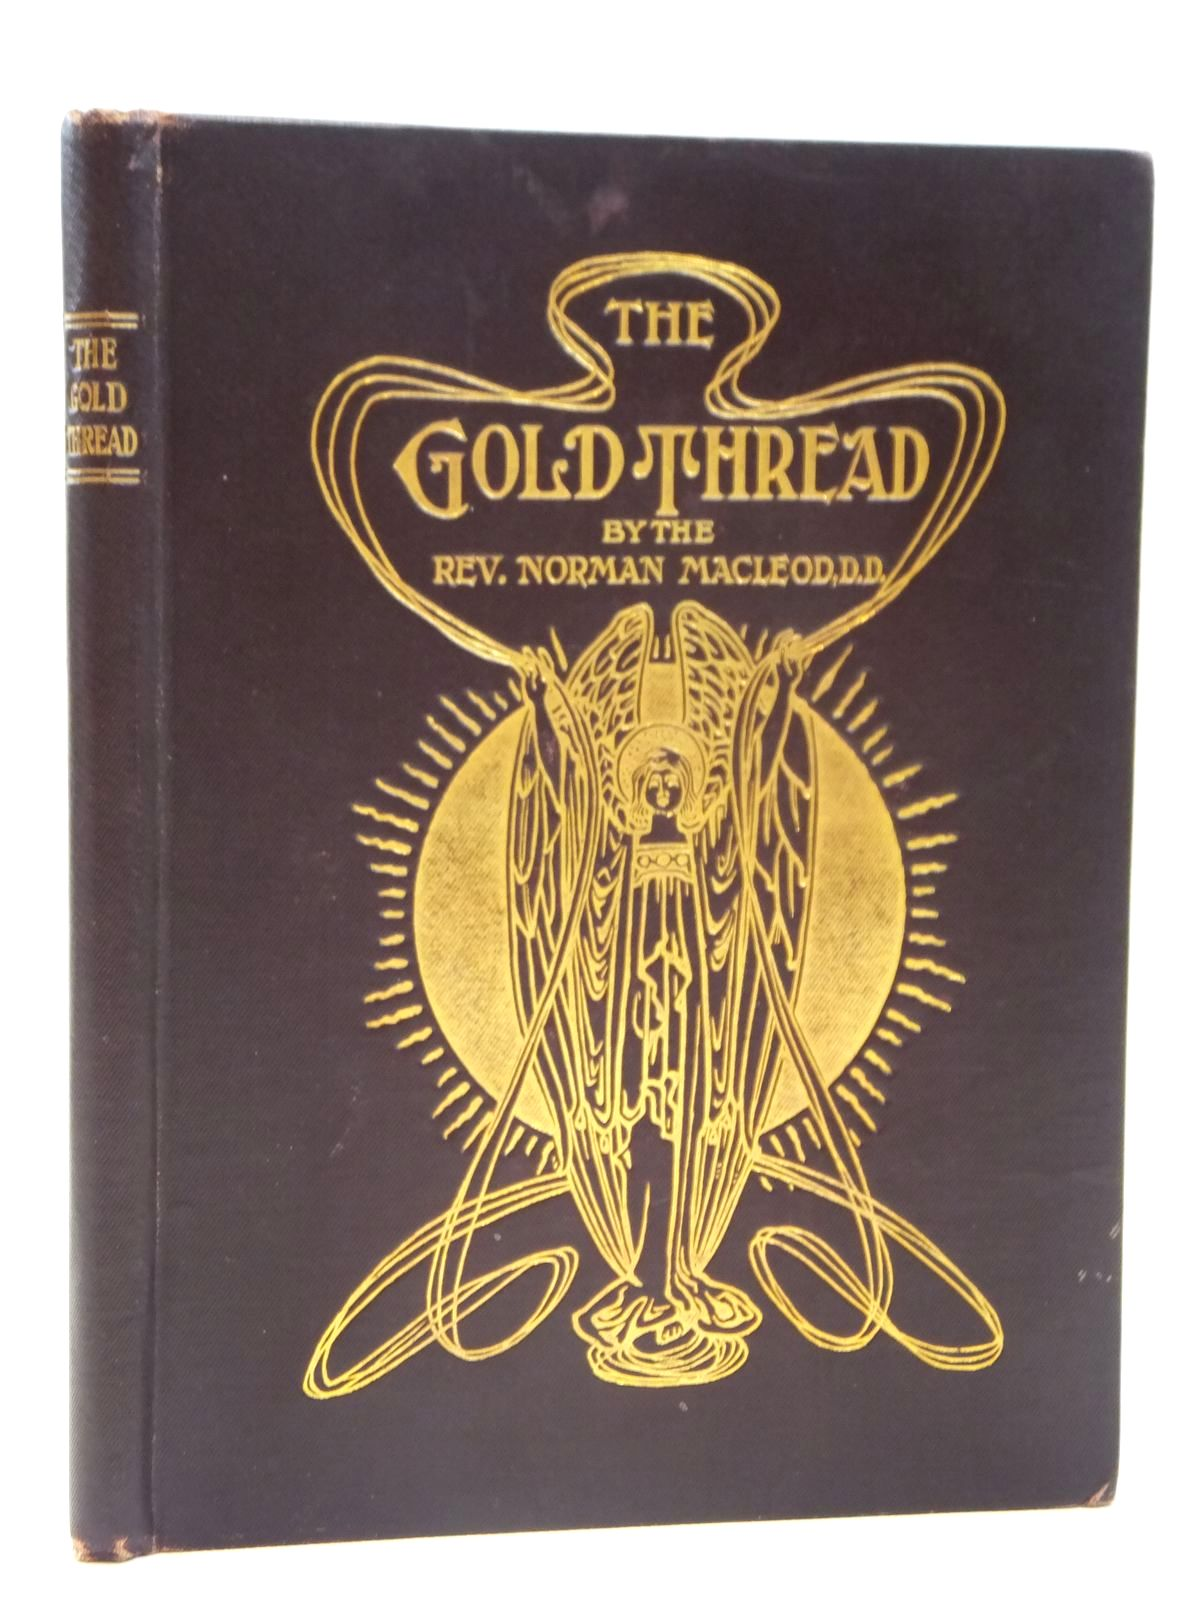 Photo of THE GOLD THREAD written by MacLeod, Norman illustrated by Bowley, M. published by Valentine & Sons, Limited (STOCK CODE: 2121692)  for sale by Stella & Rose's Books